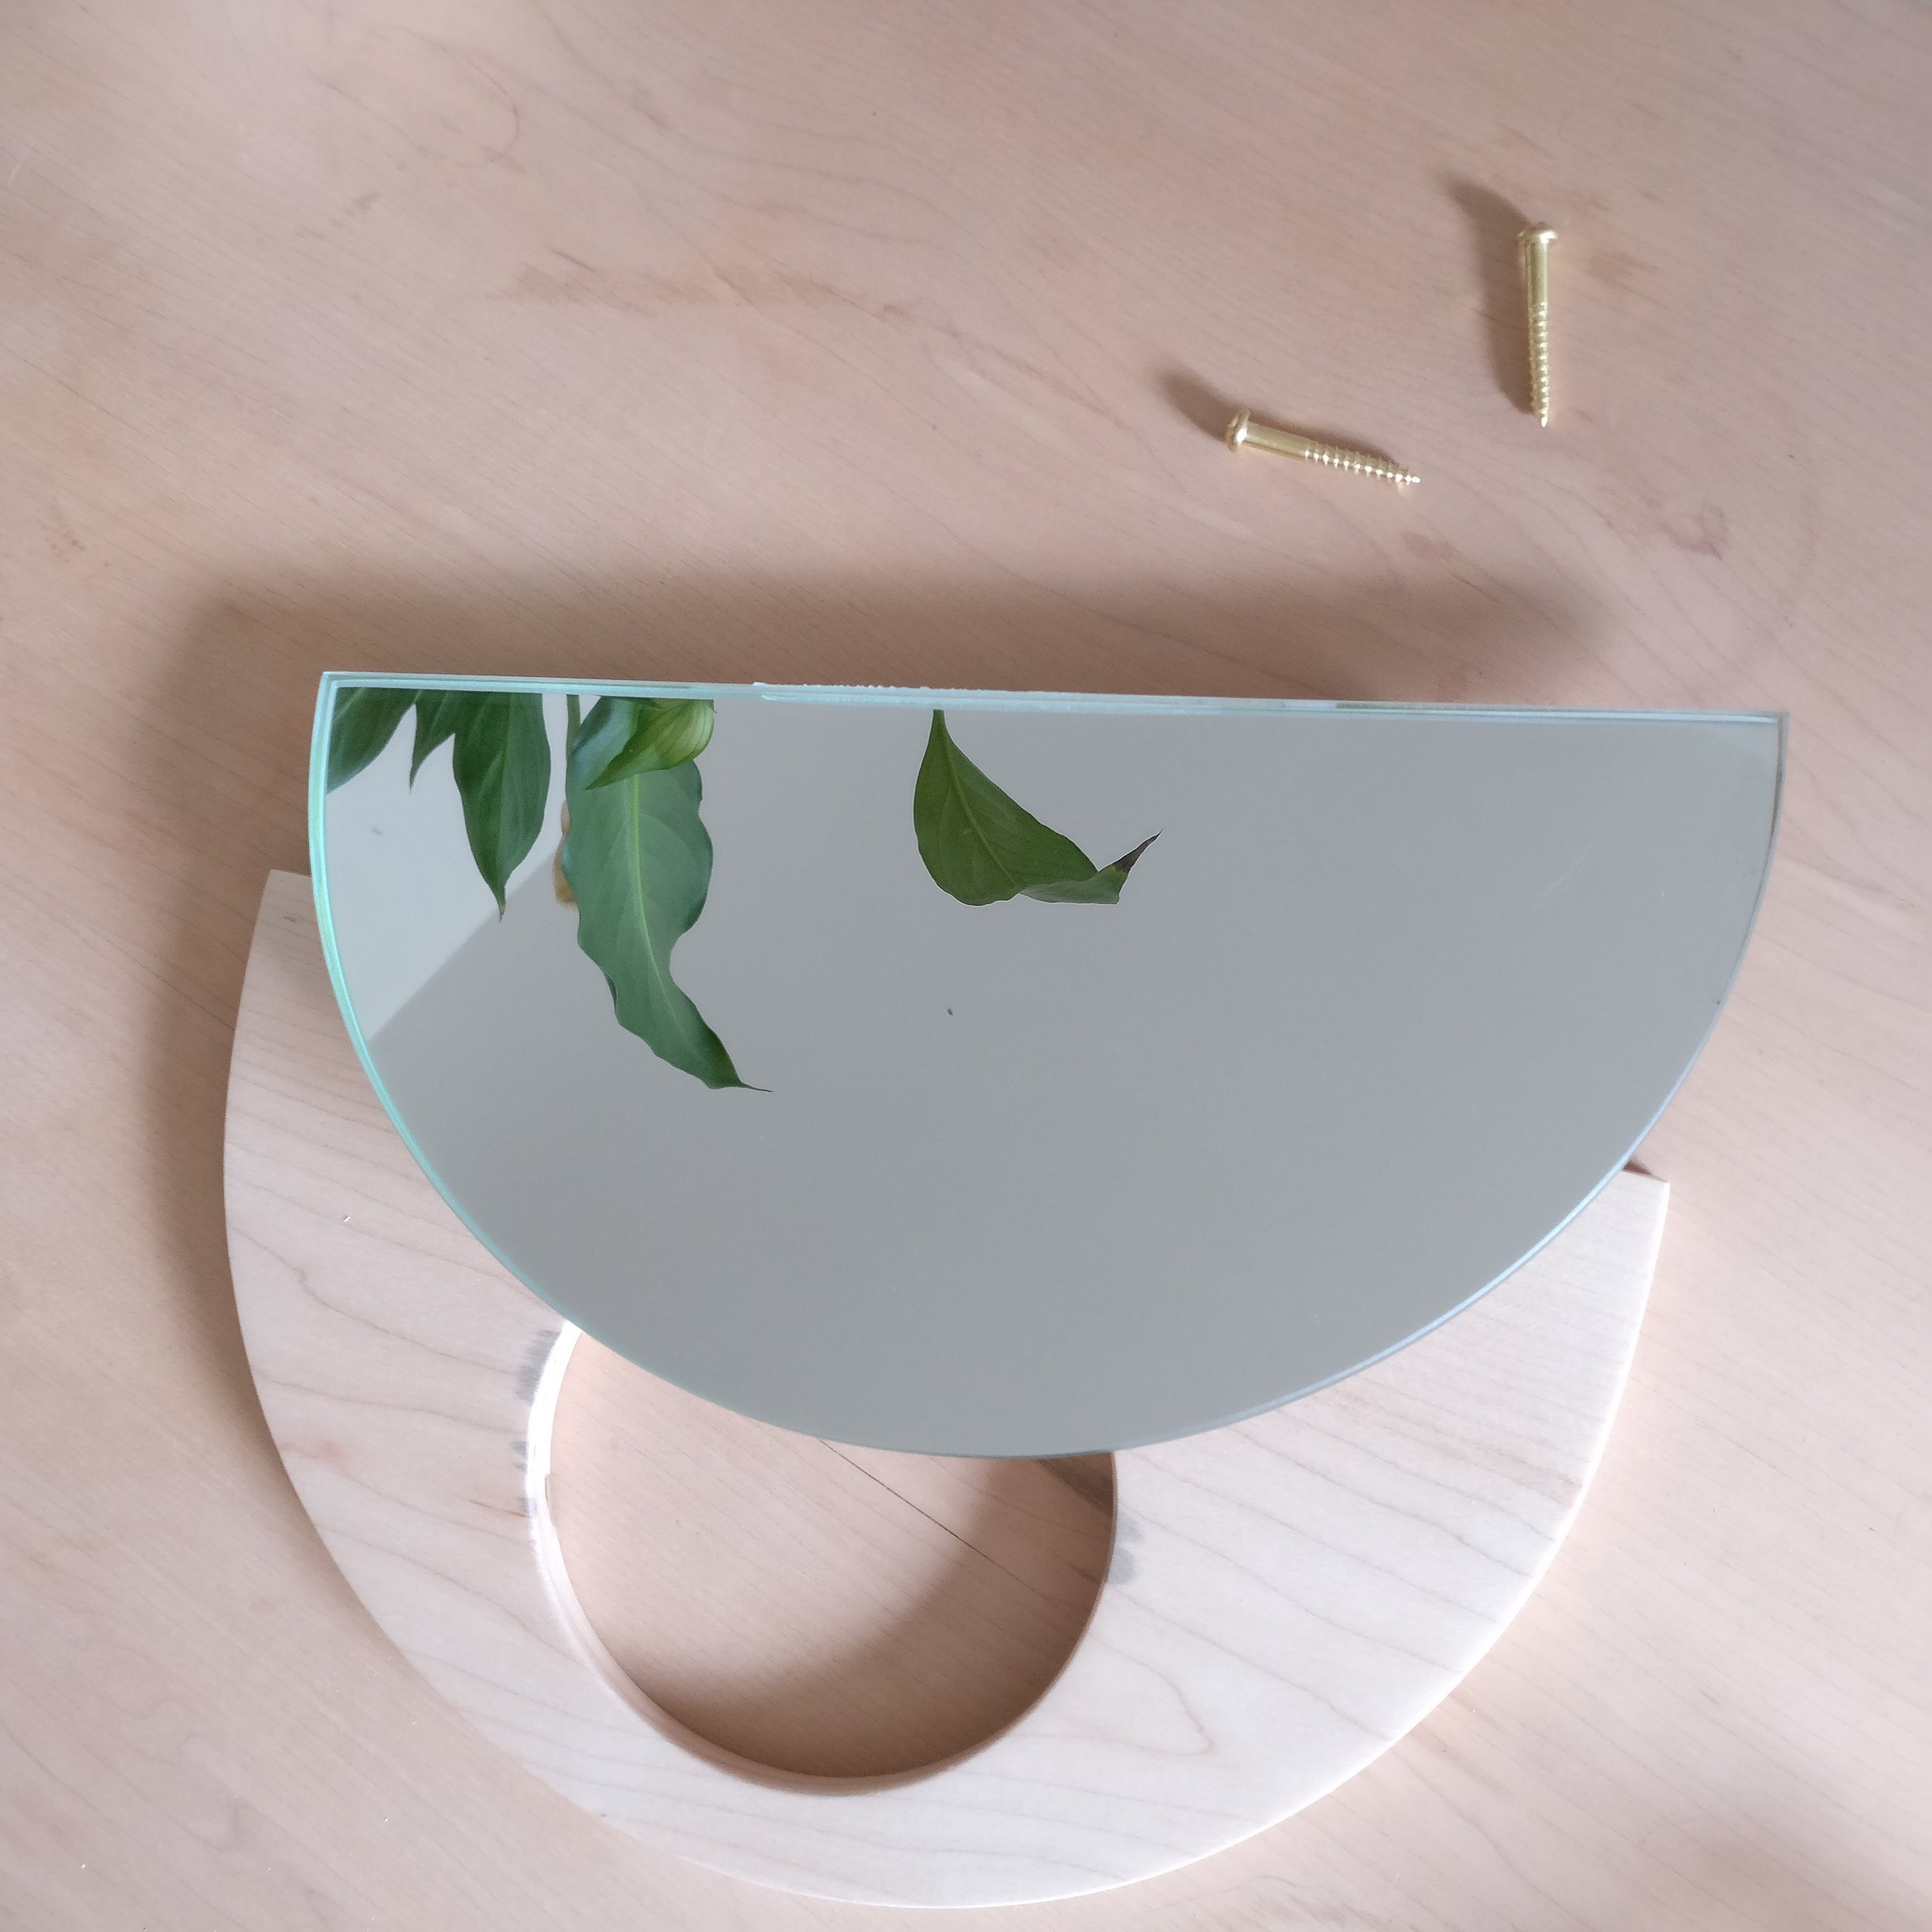 8/8 PROJECT, DESIGN, DESIGNER, MYRIAM RIGAUD, PLANT HANGER WOOD DESIGN, WALL HANGER